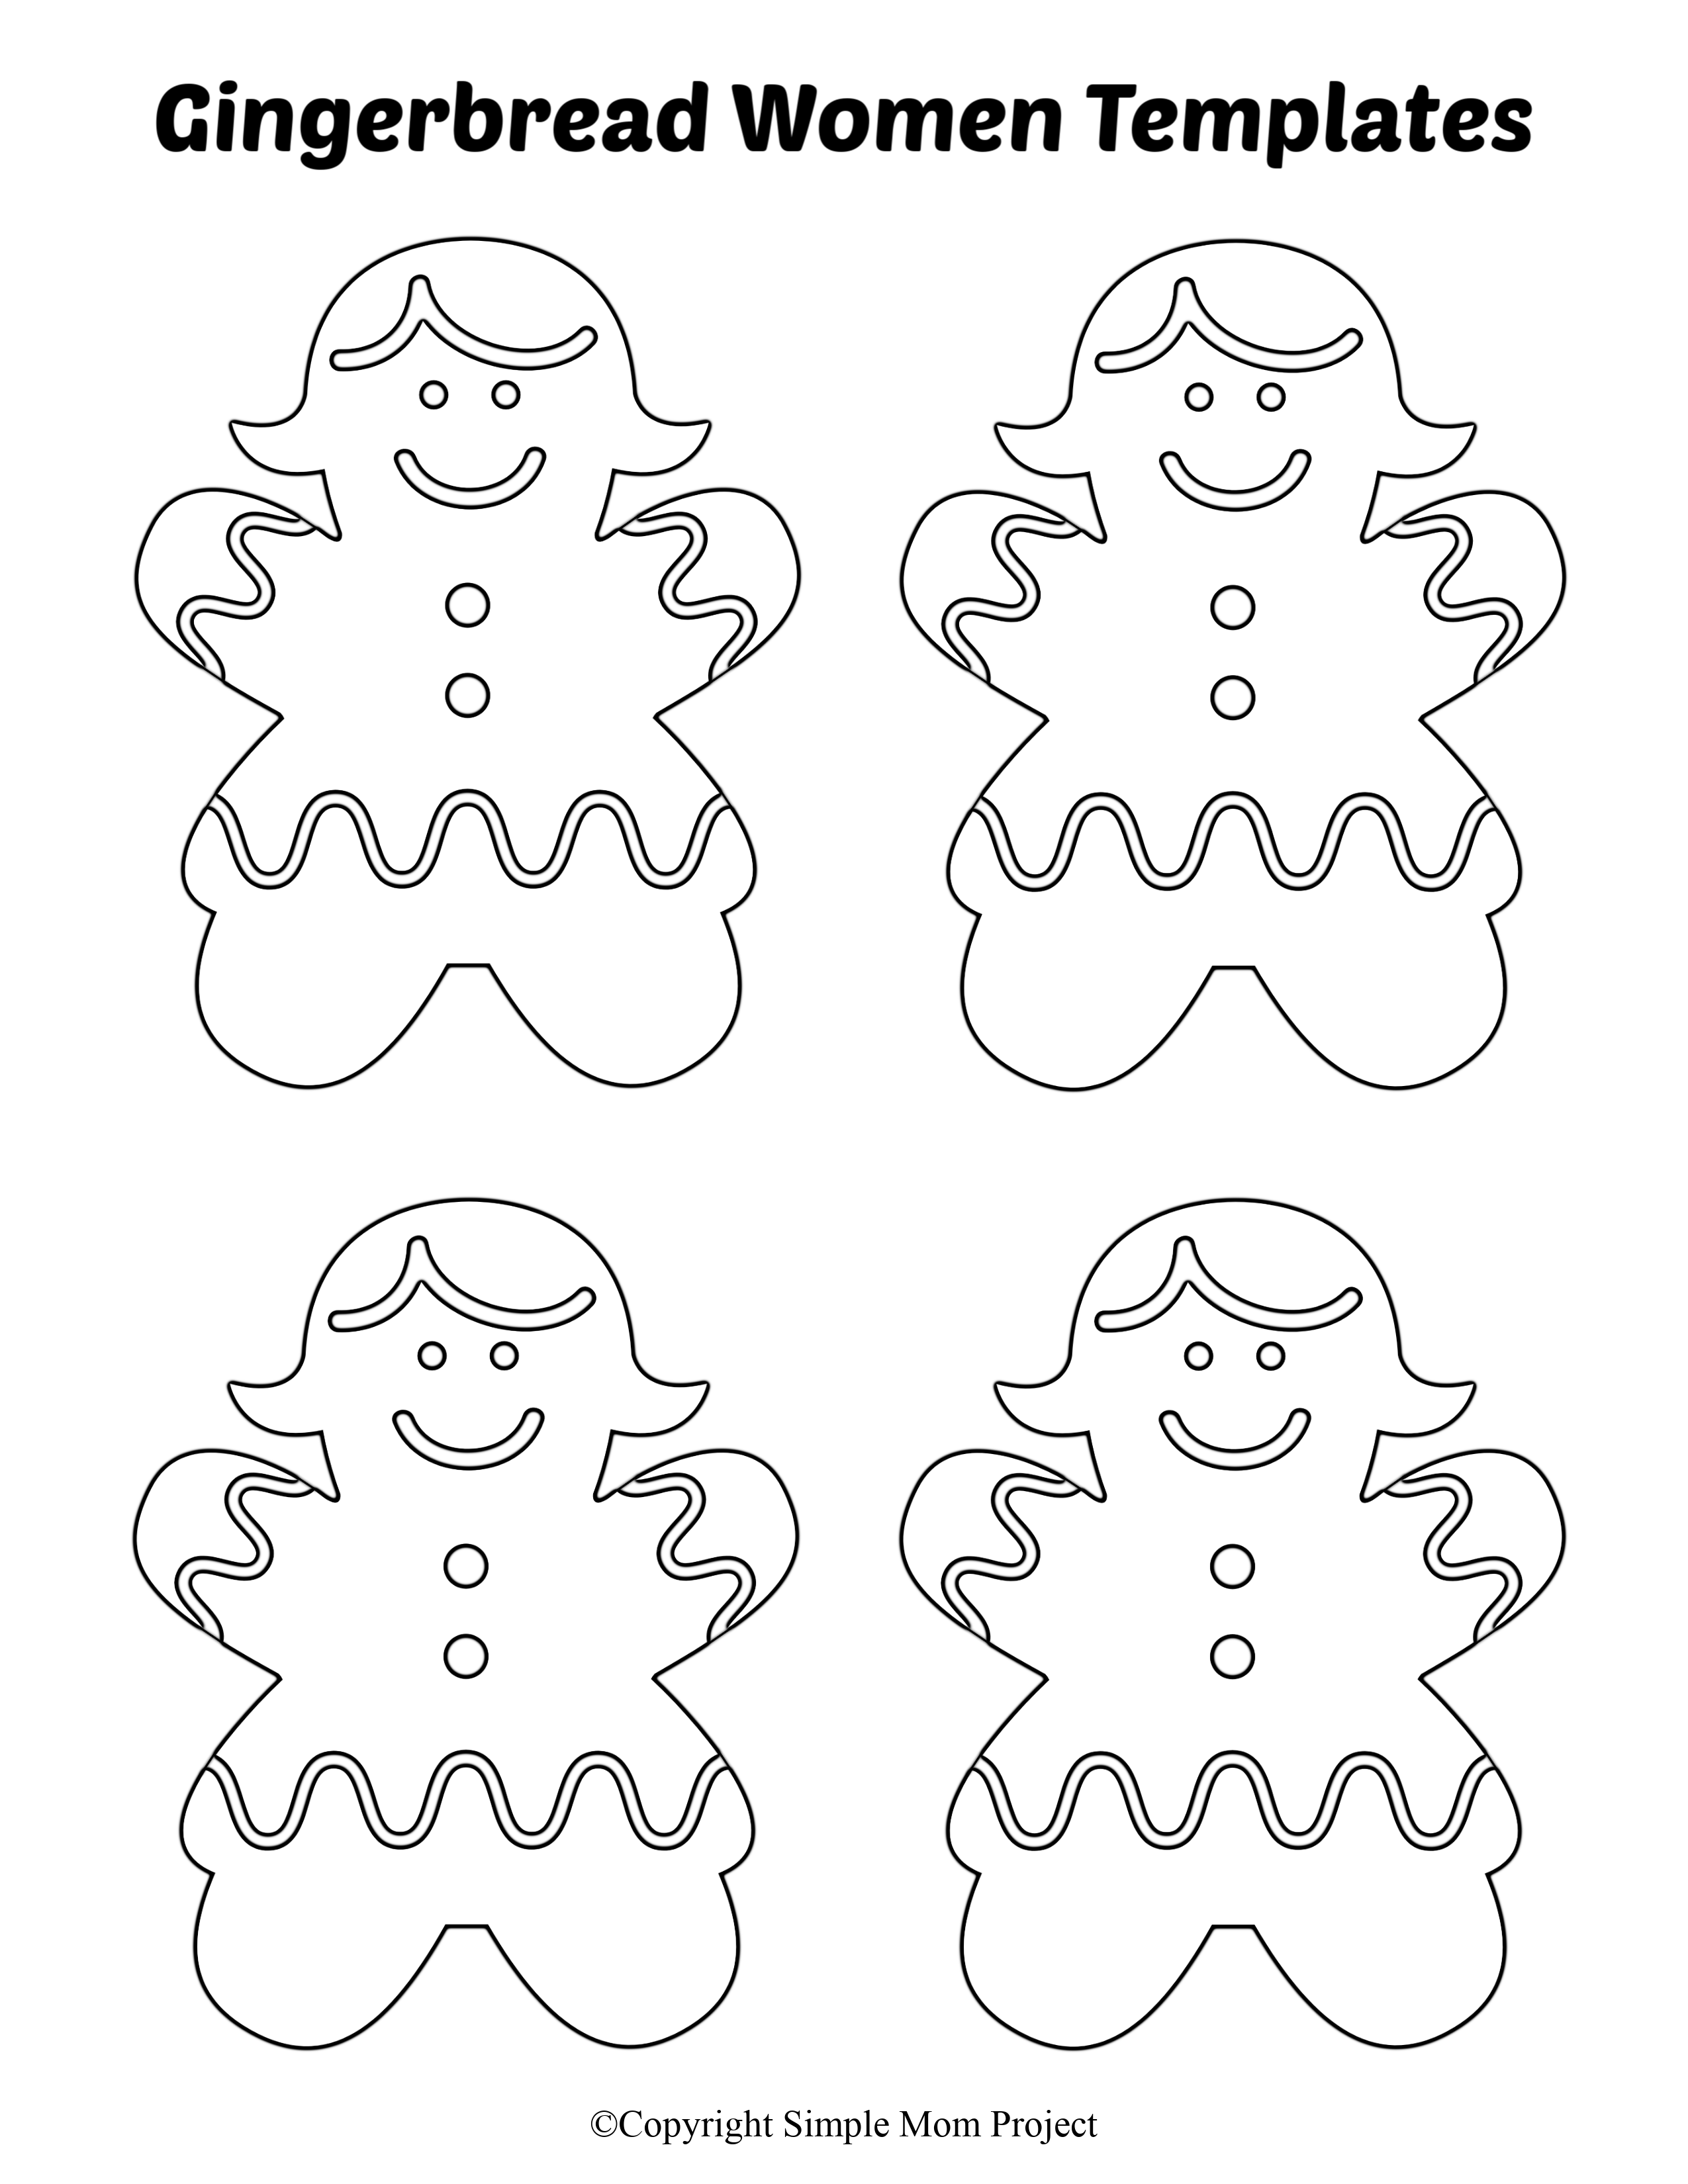 Free Printable Small Gingerbread Women Cutout Templates